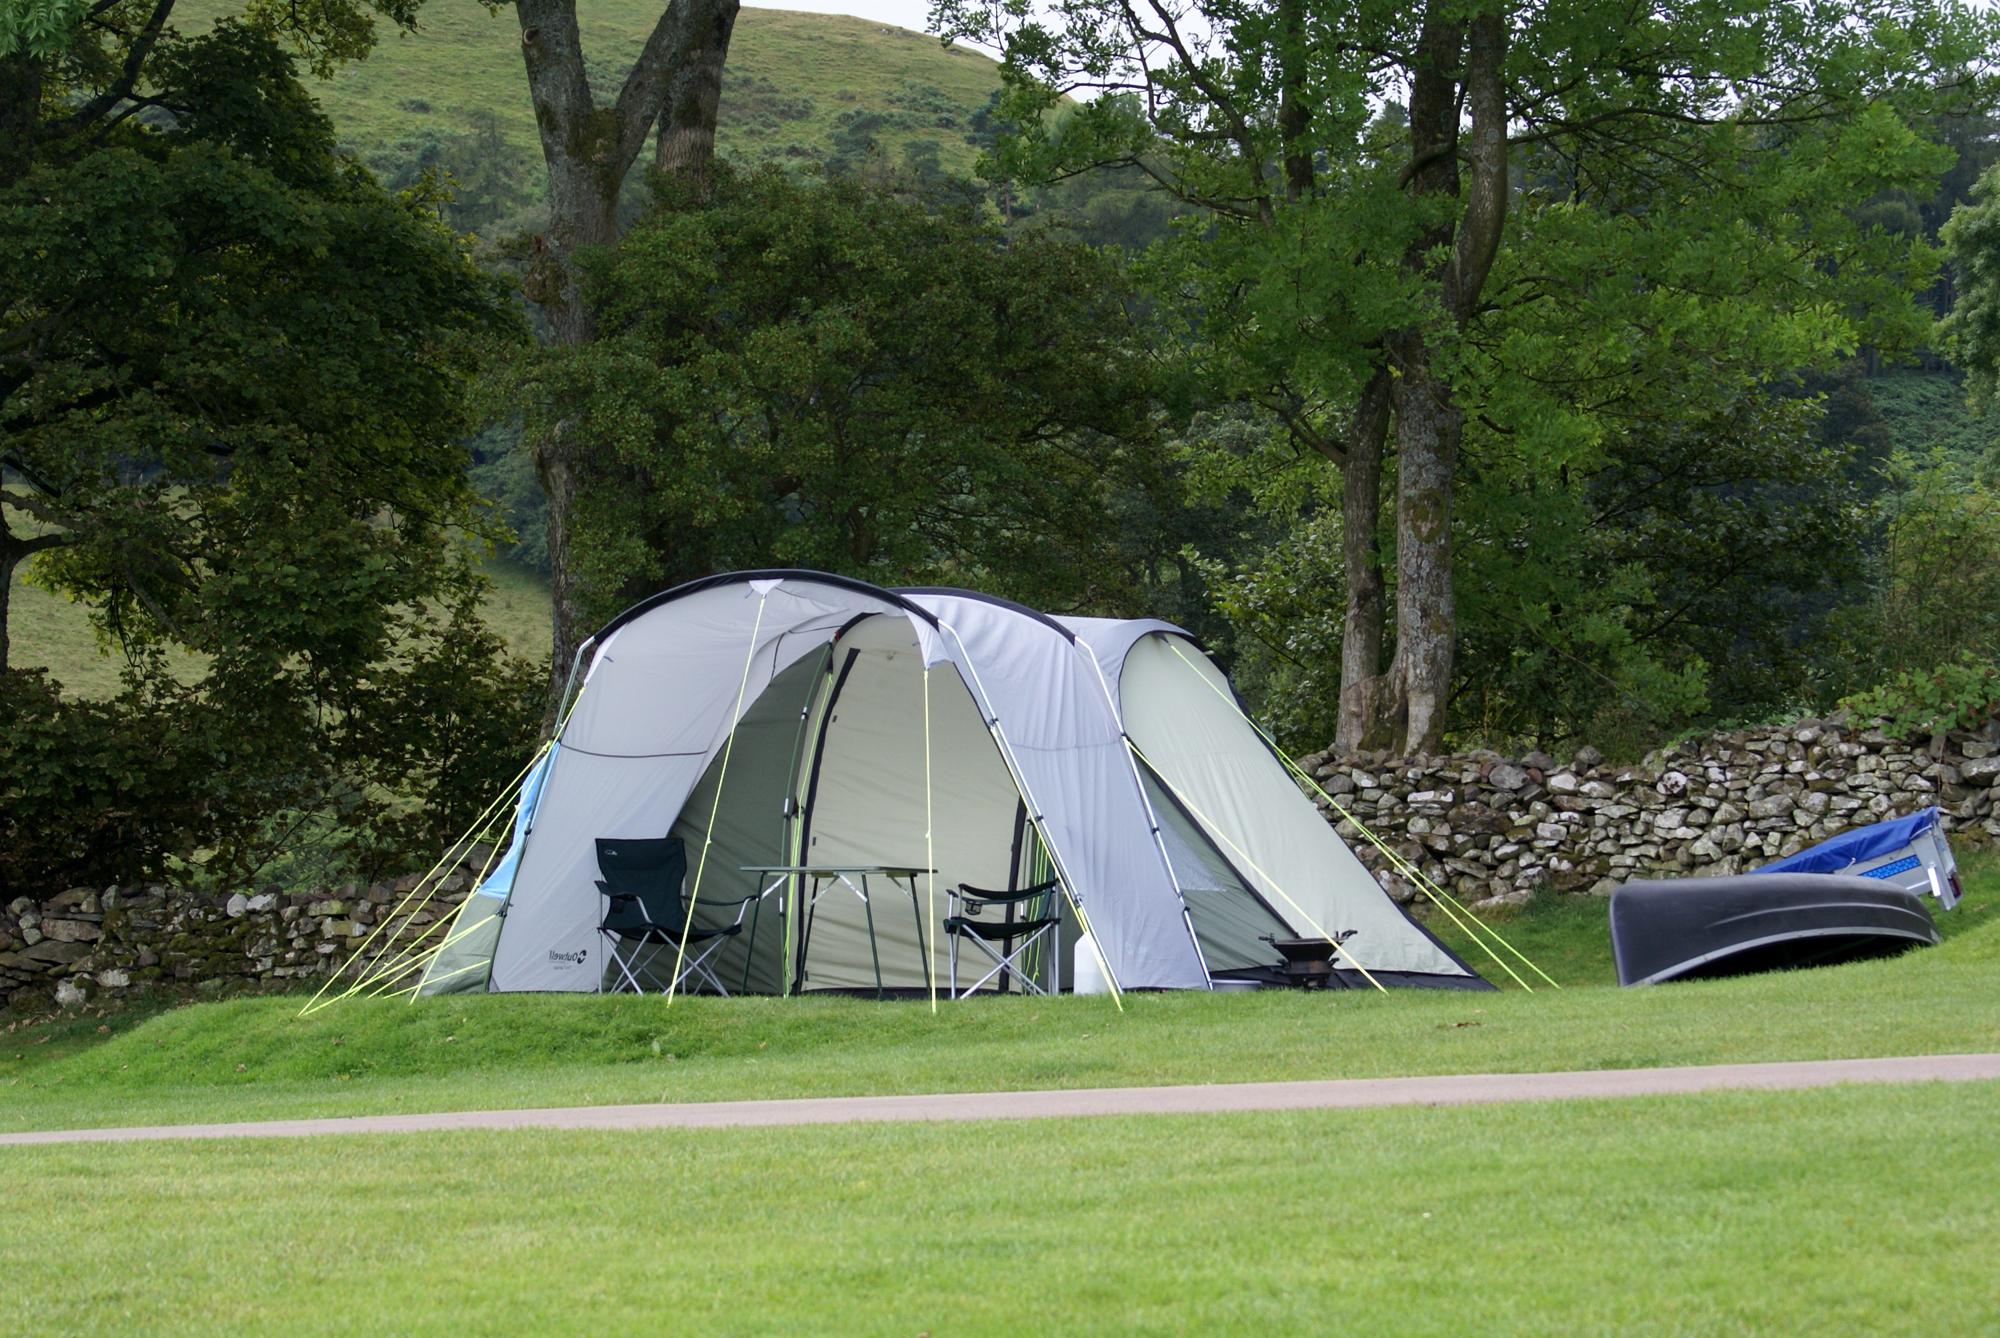 Pooley Bridge Camping – Campsites near Pooley Bridge, Lake District